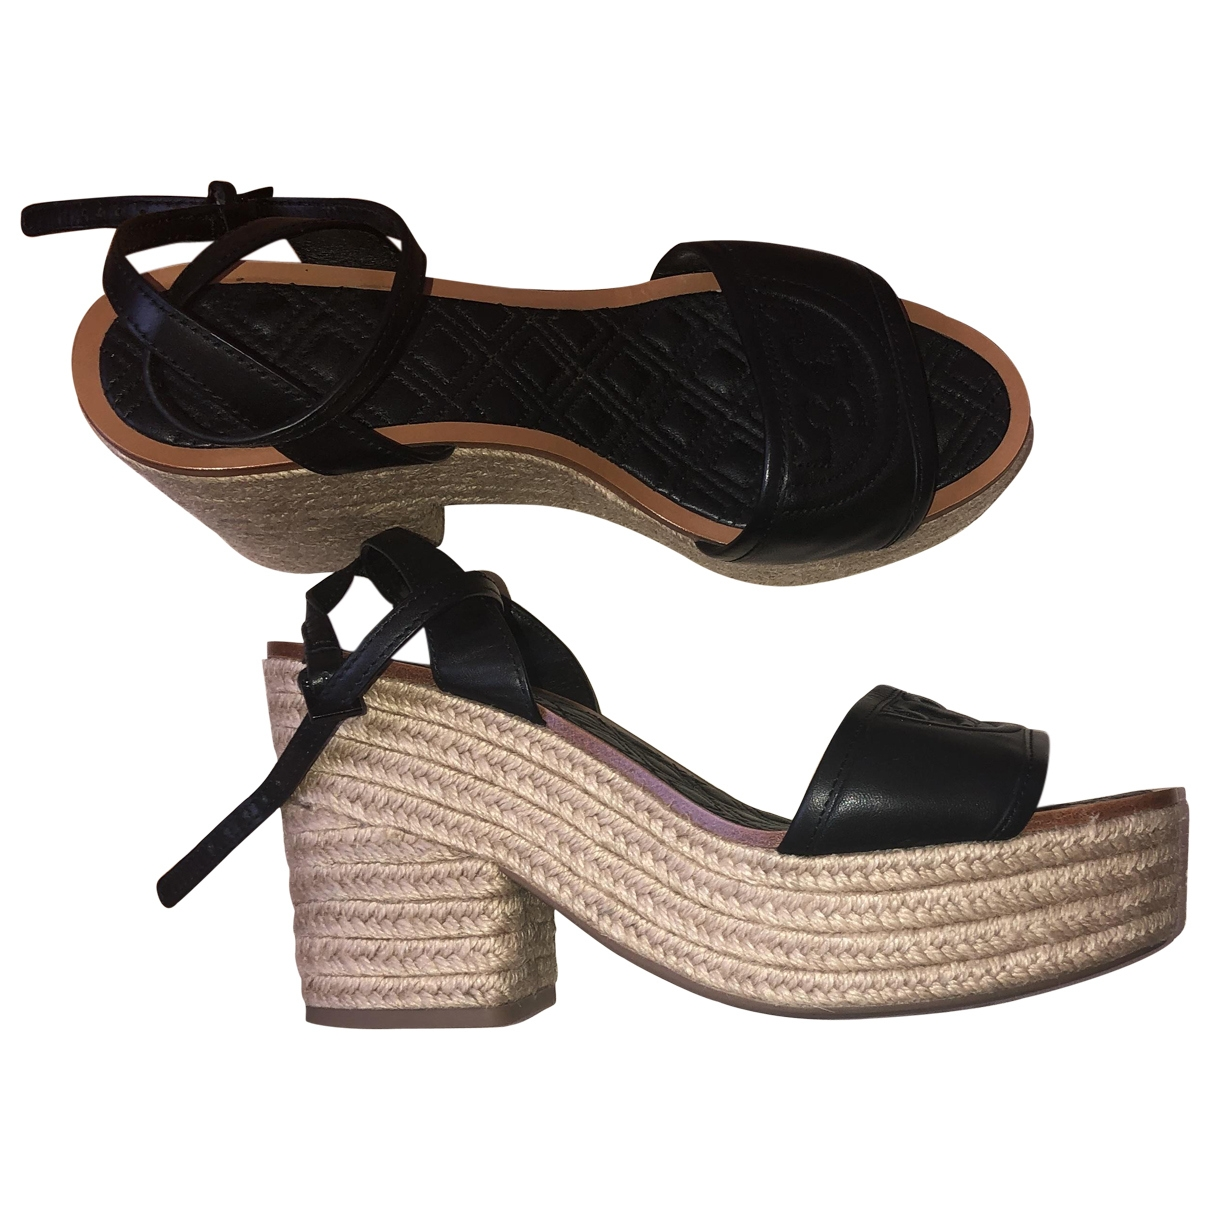 Tory Burch \N Black Leather Sandals for Women 8.5 US